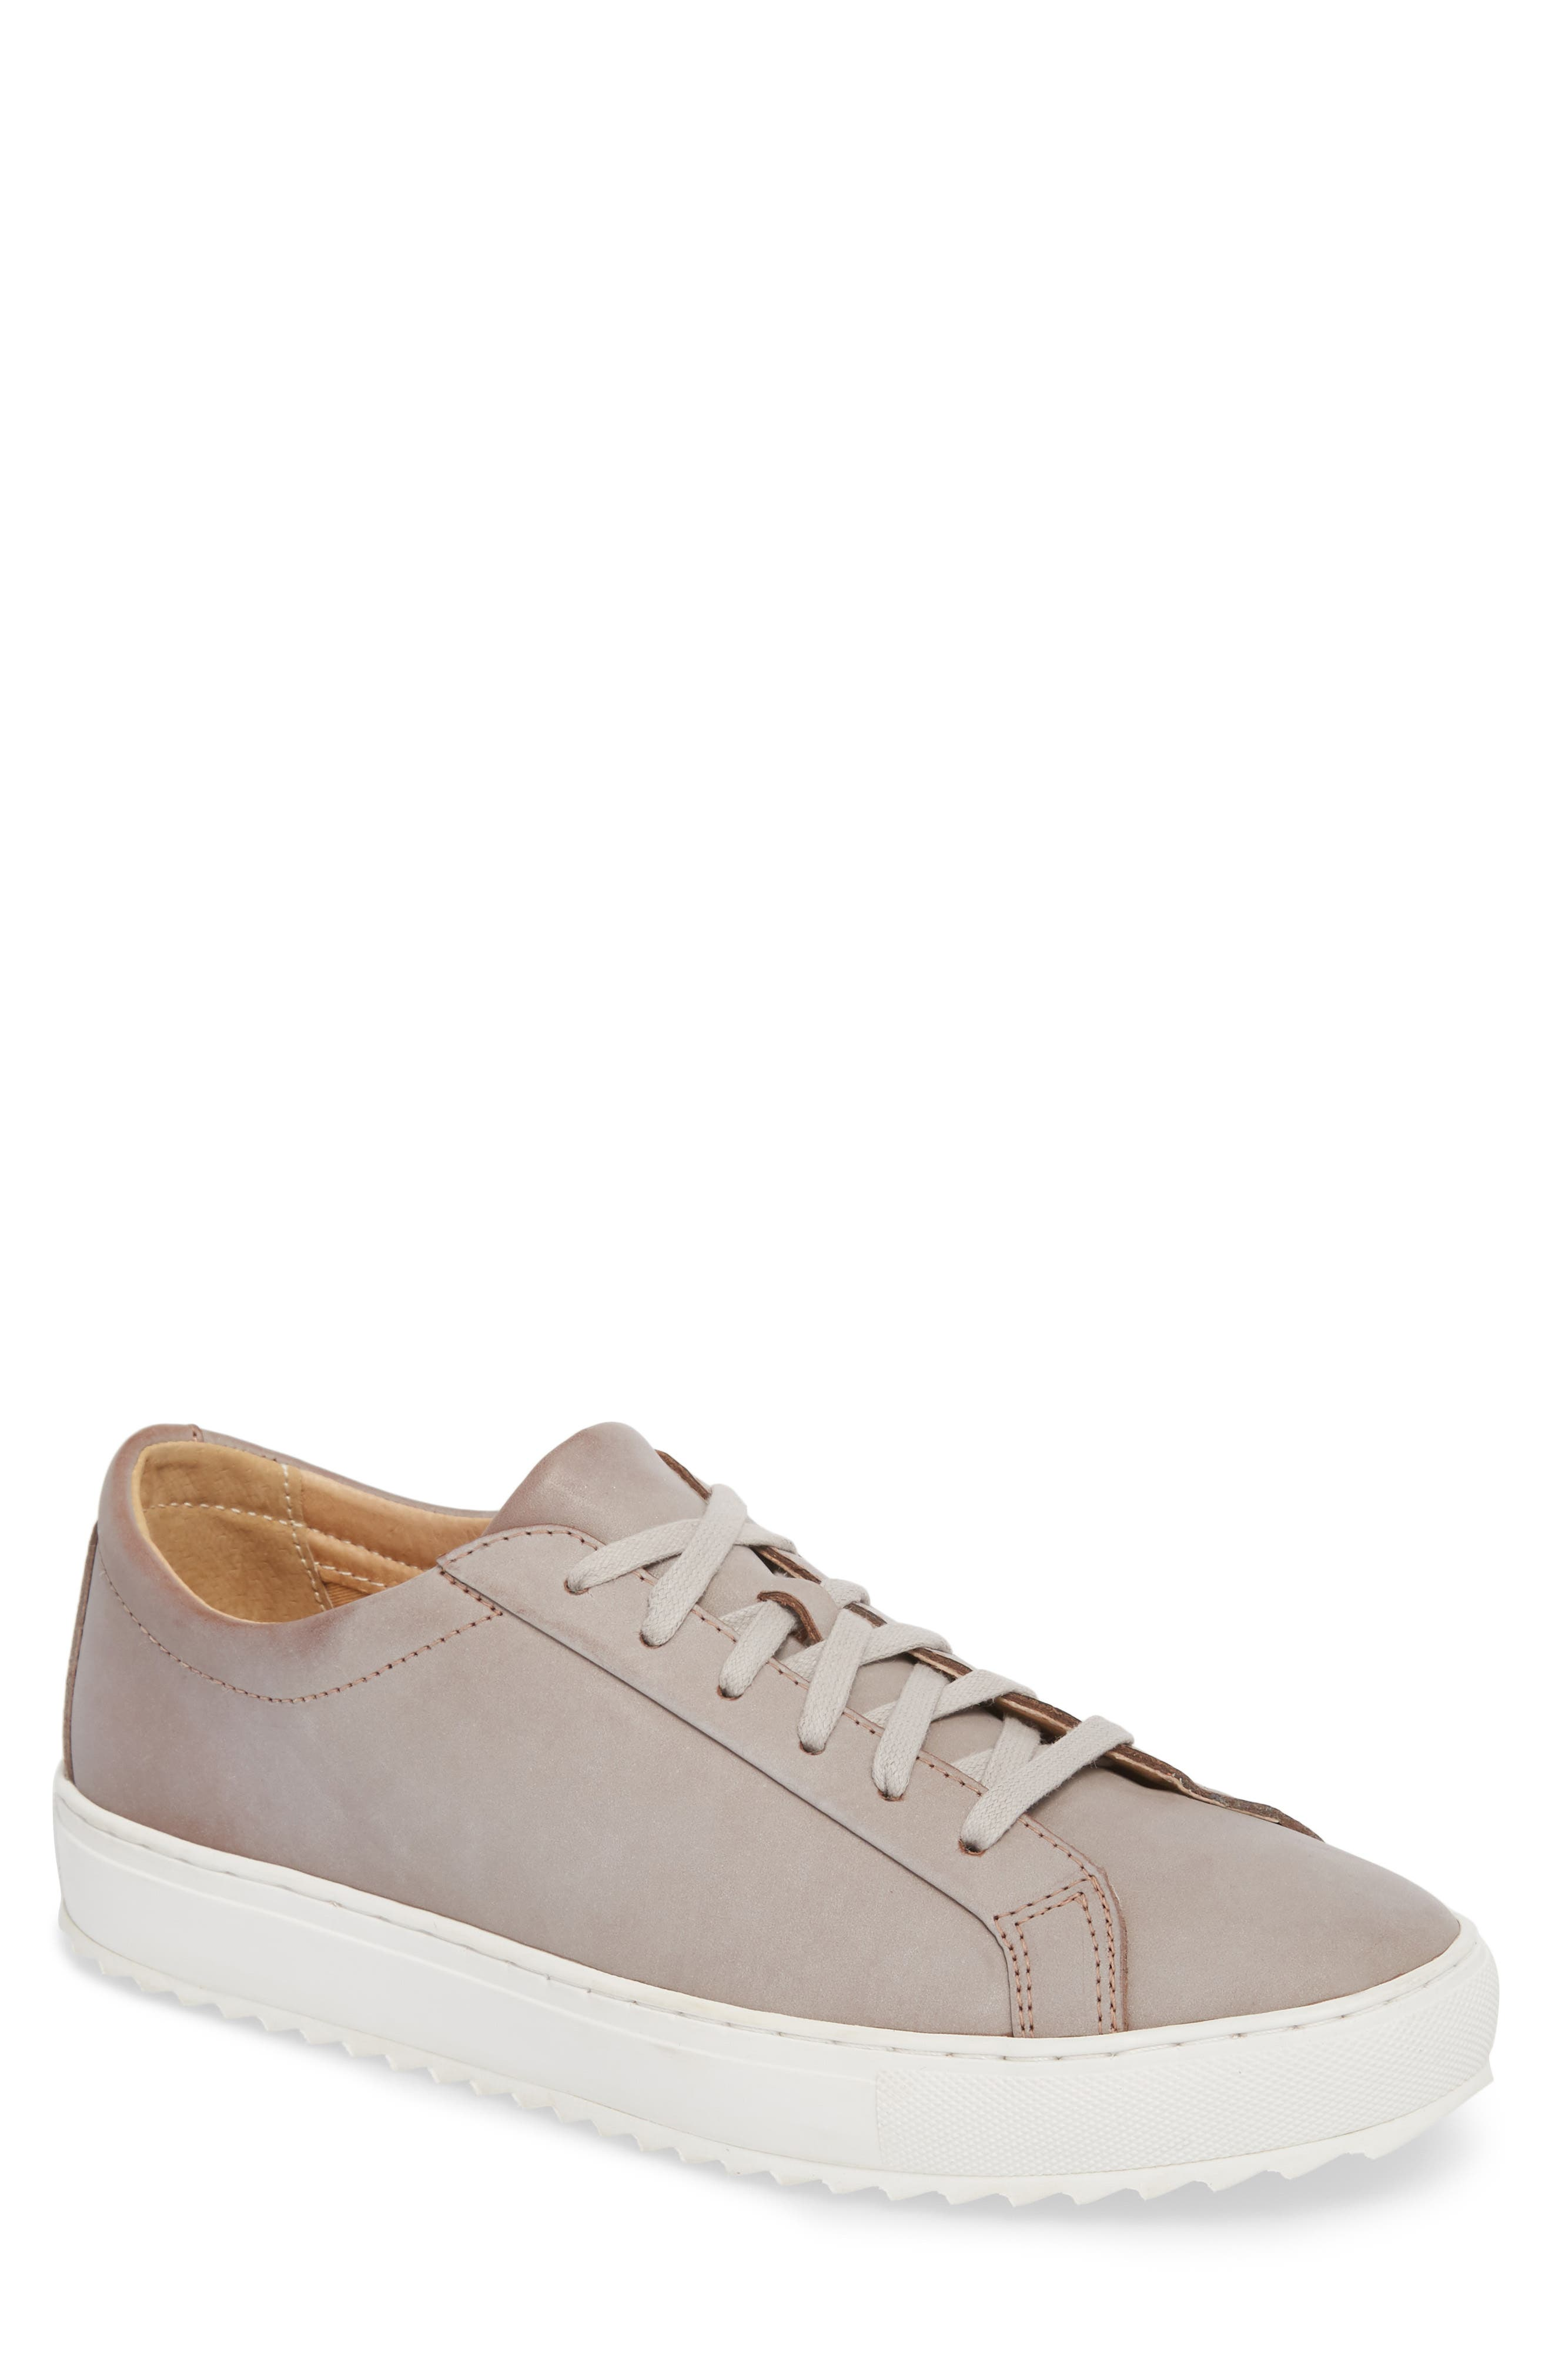 Kennedy Lugged Sneaker,                         Main,                         color, Sand Stone Leather